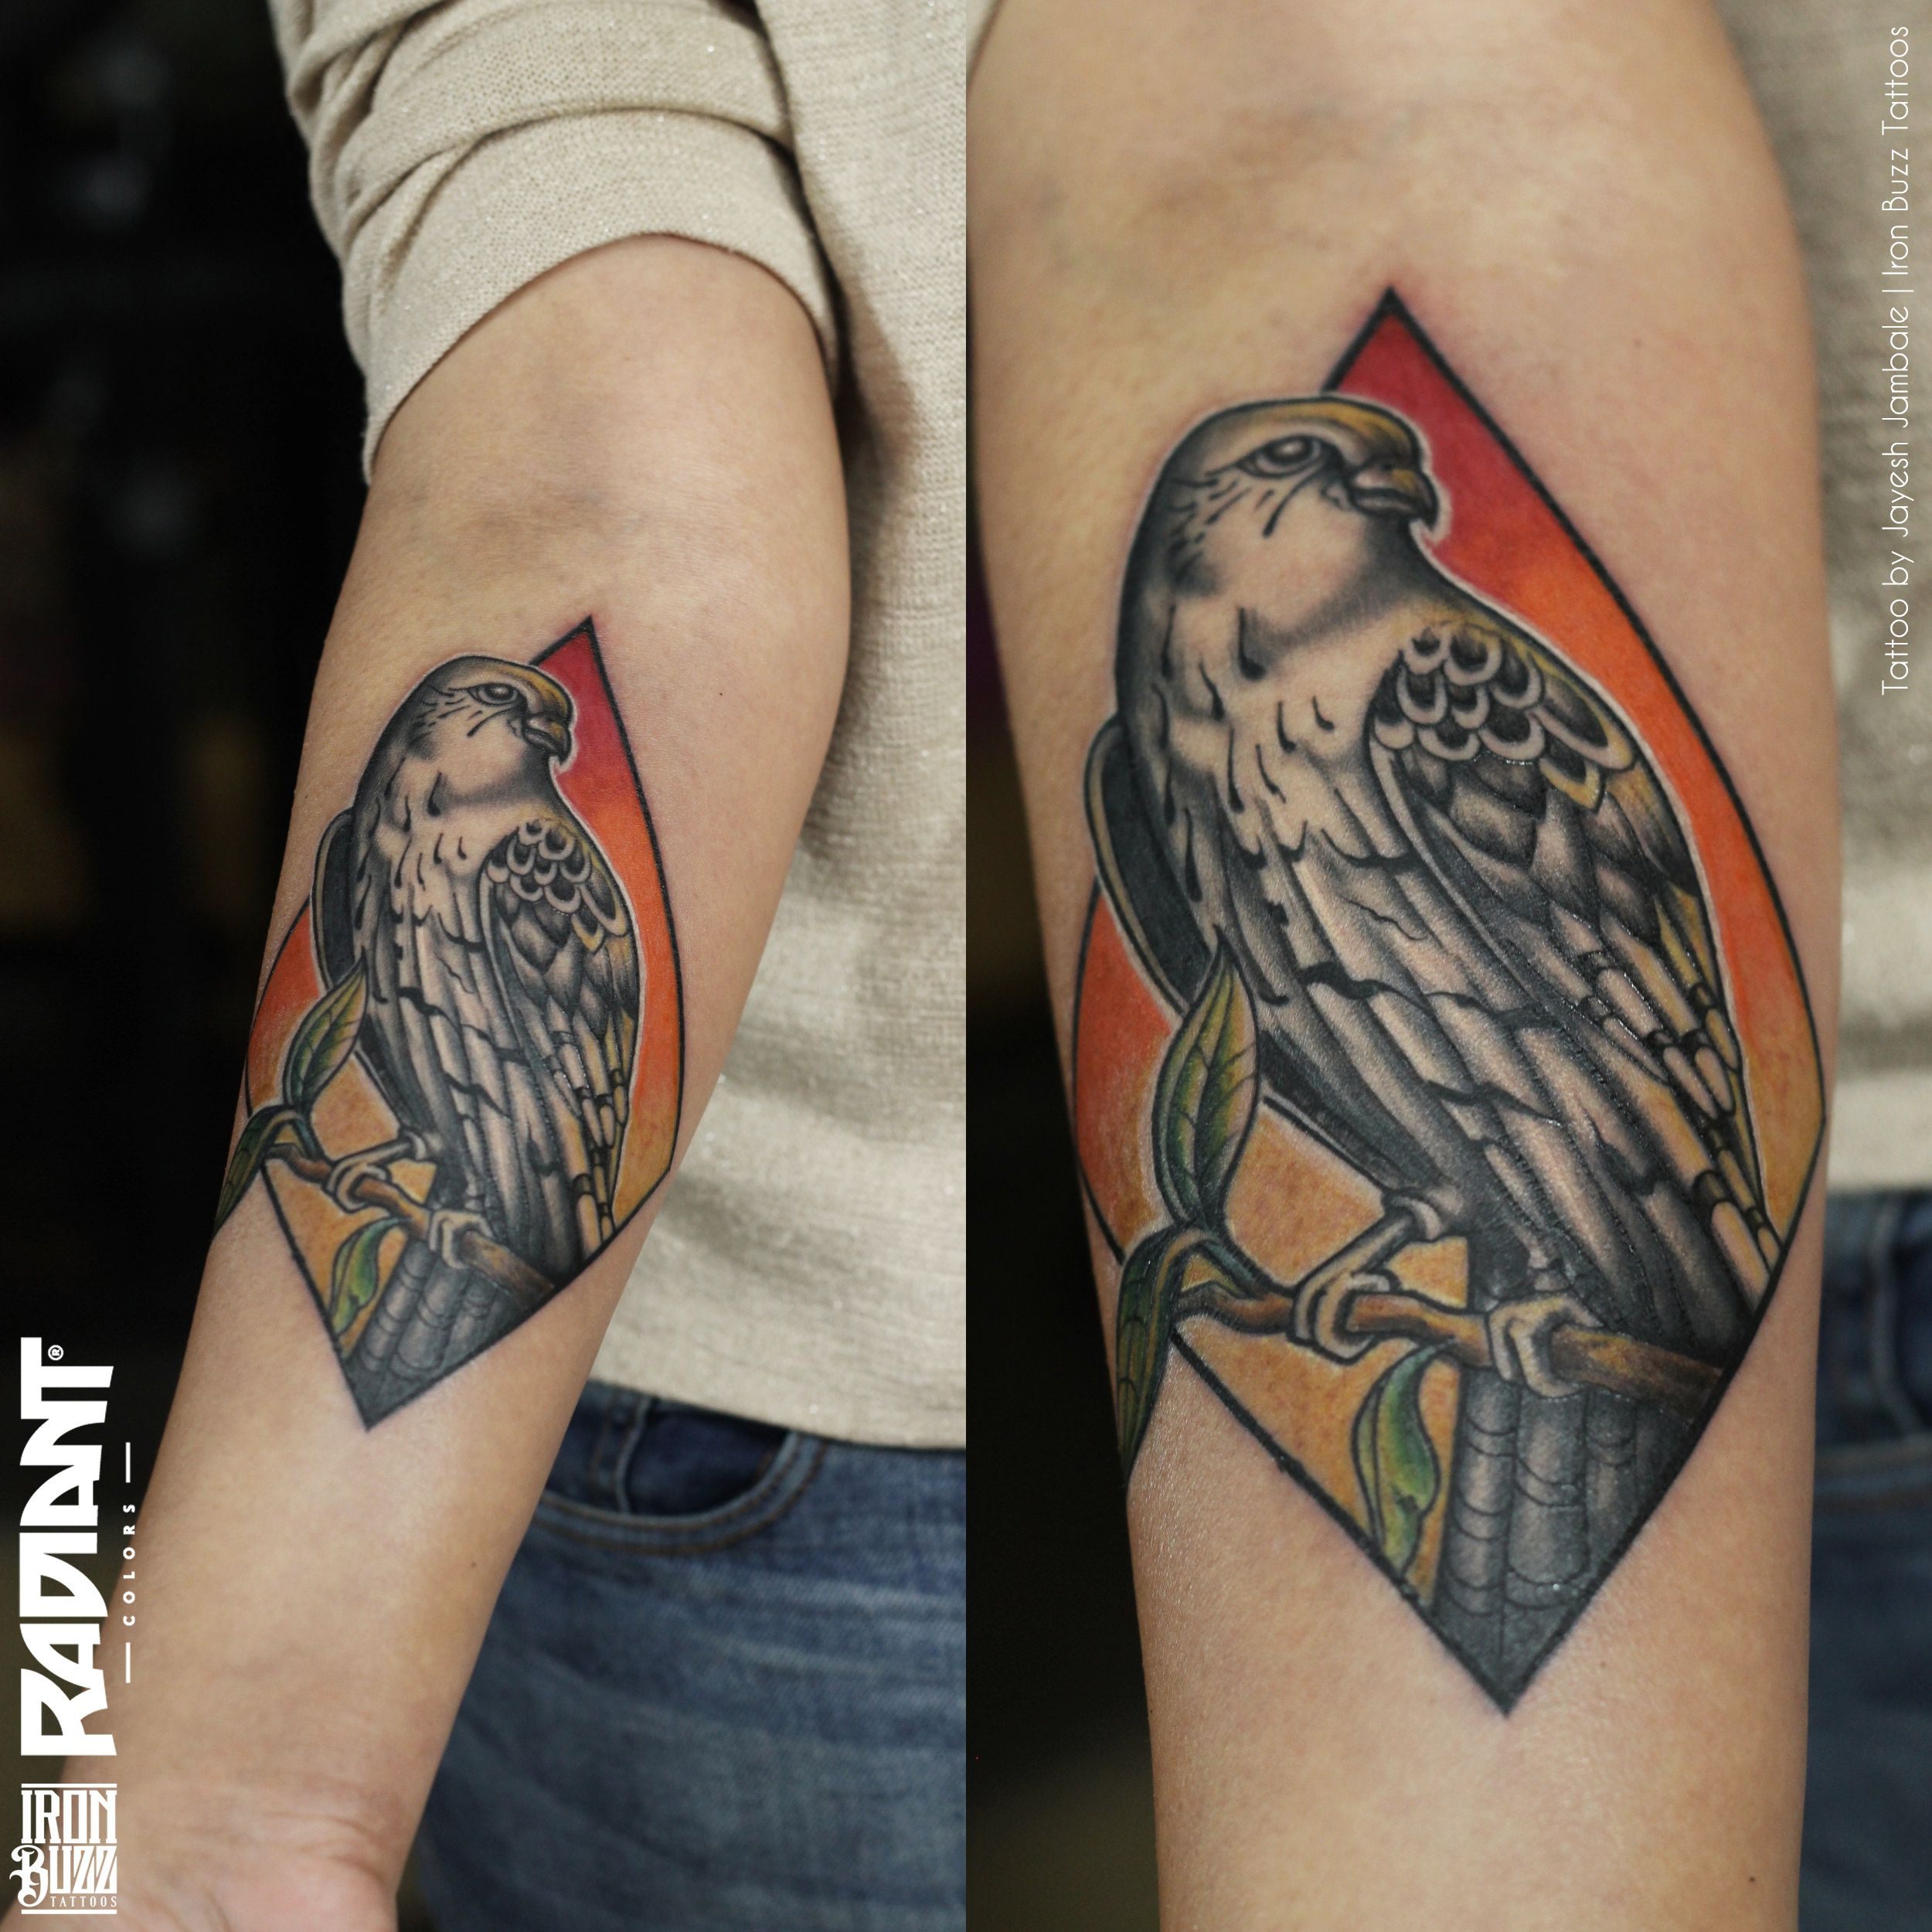 Neo traditional eagle hawk bird tattoo done at Iron Buzz